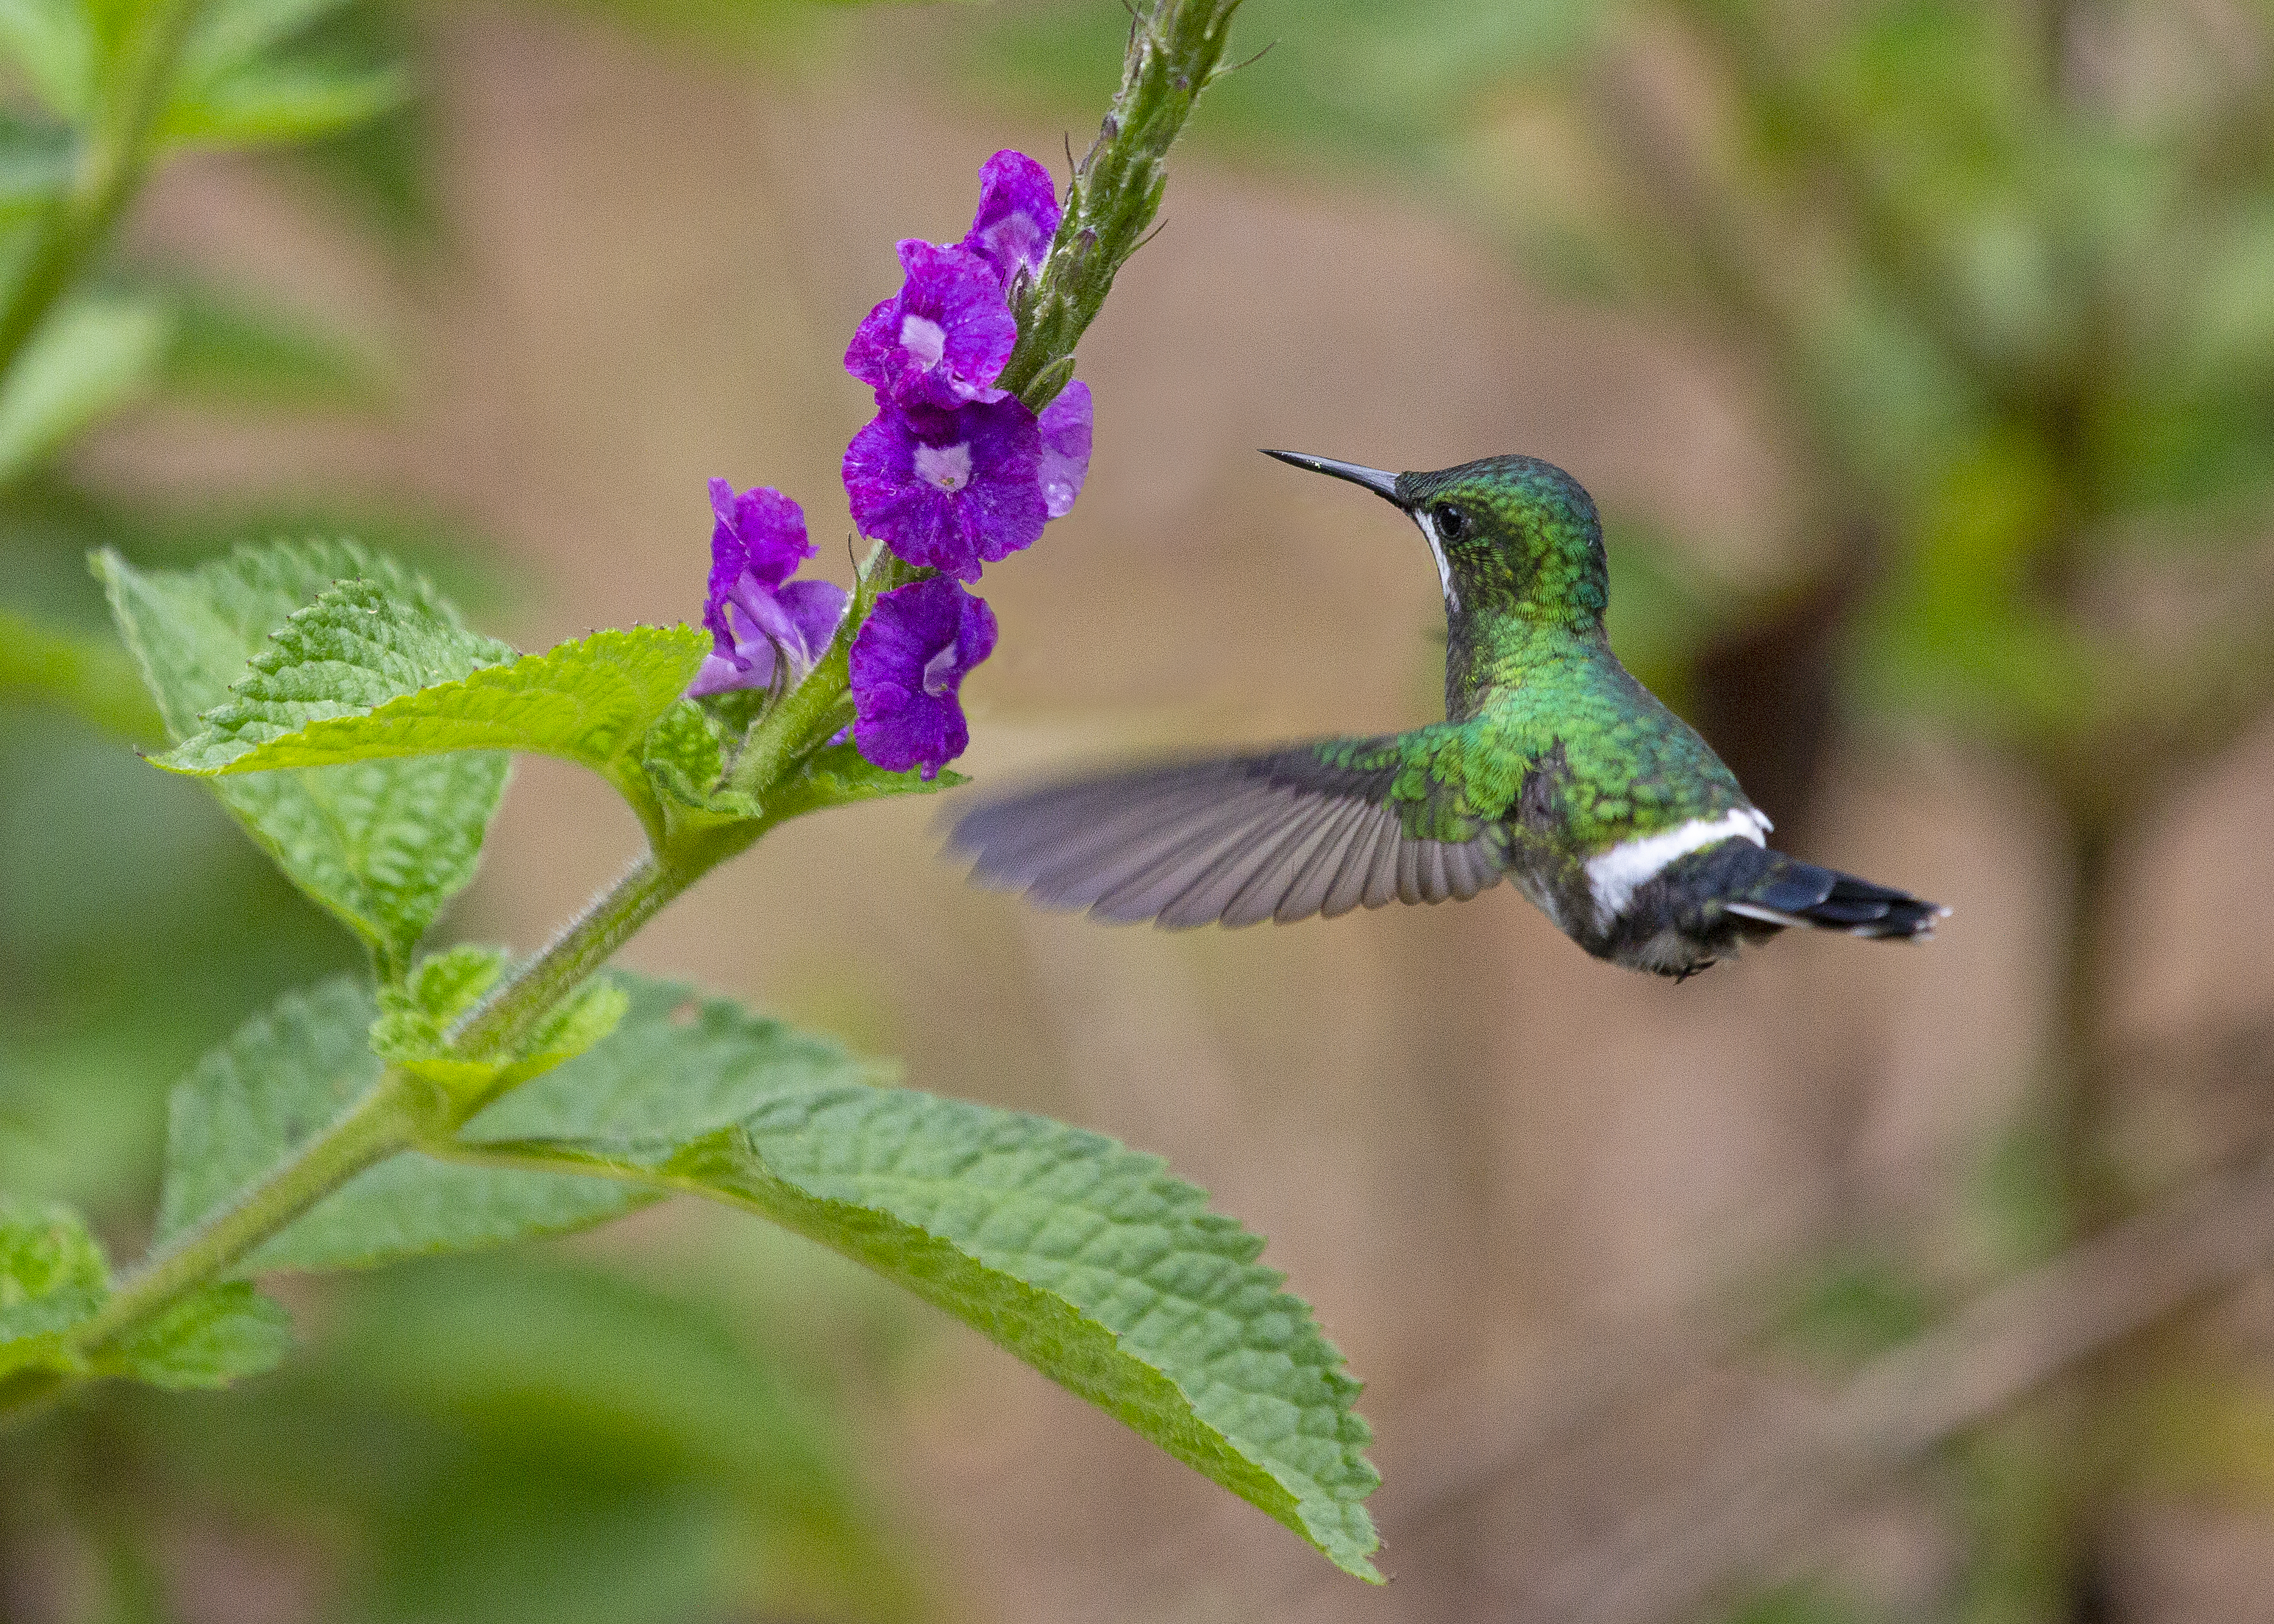 Free download high resolution image - free image free photo free stock image public domain picture -Green and blue hummingbird Sparkling Violetear